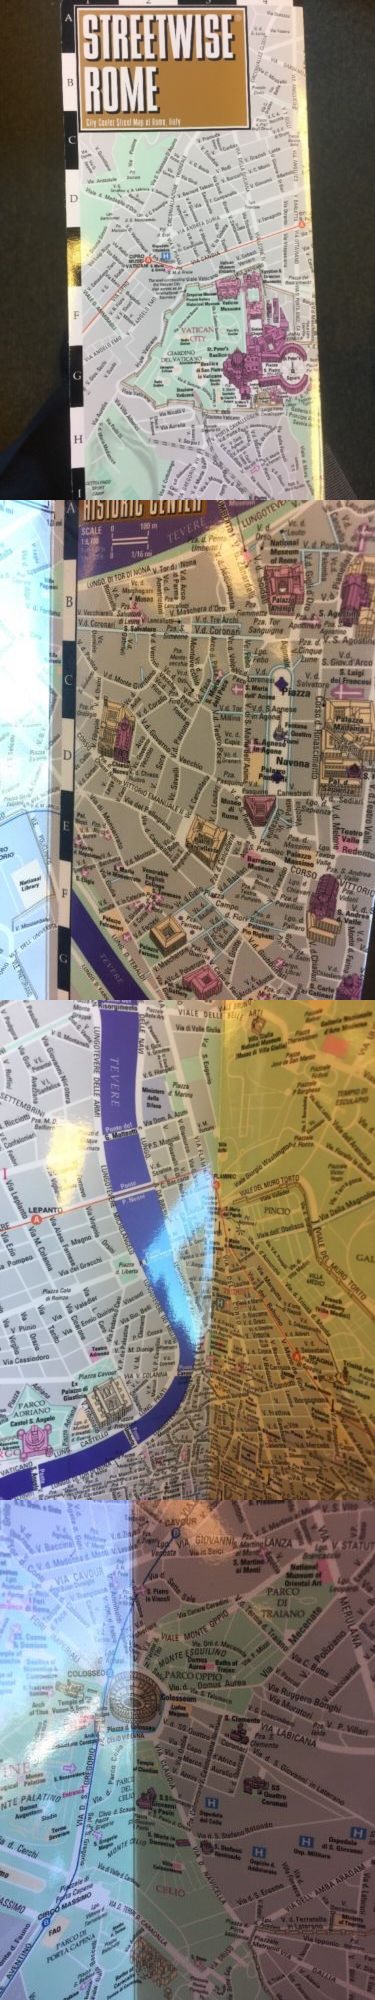 Map Of Current City Rome Italy on verona italy map, city of los angeles california map, city of beijing china map, city of zurich switzerland map, city of calgary canada map, city of salvador brazil map, city of manaus brazil map, city of buenos aires argentina map, city of izmir turkey map, city of tegucigalpa honduras map, city of marseille france map, rome hop on map, city of germany map, rome city tourist map, city of reykjavik iceland map, city of caracas venezuela map, city of manila philippines map, city of belgrade serbia map, city of spain map, city of monterrey mexico map,